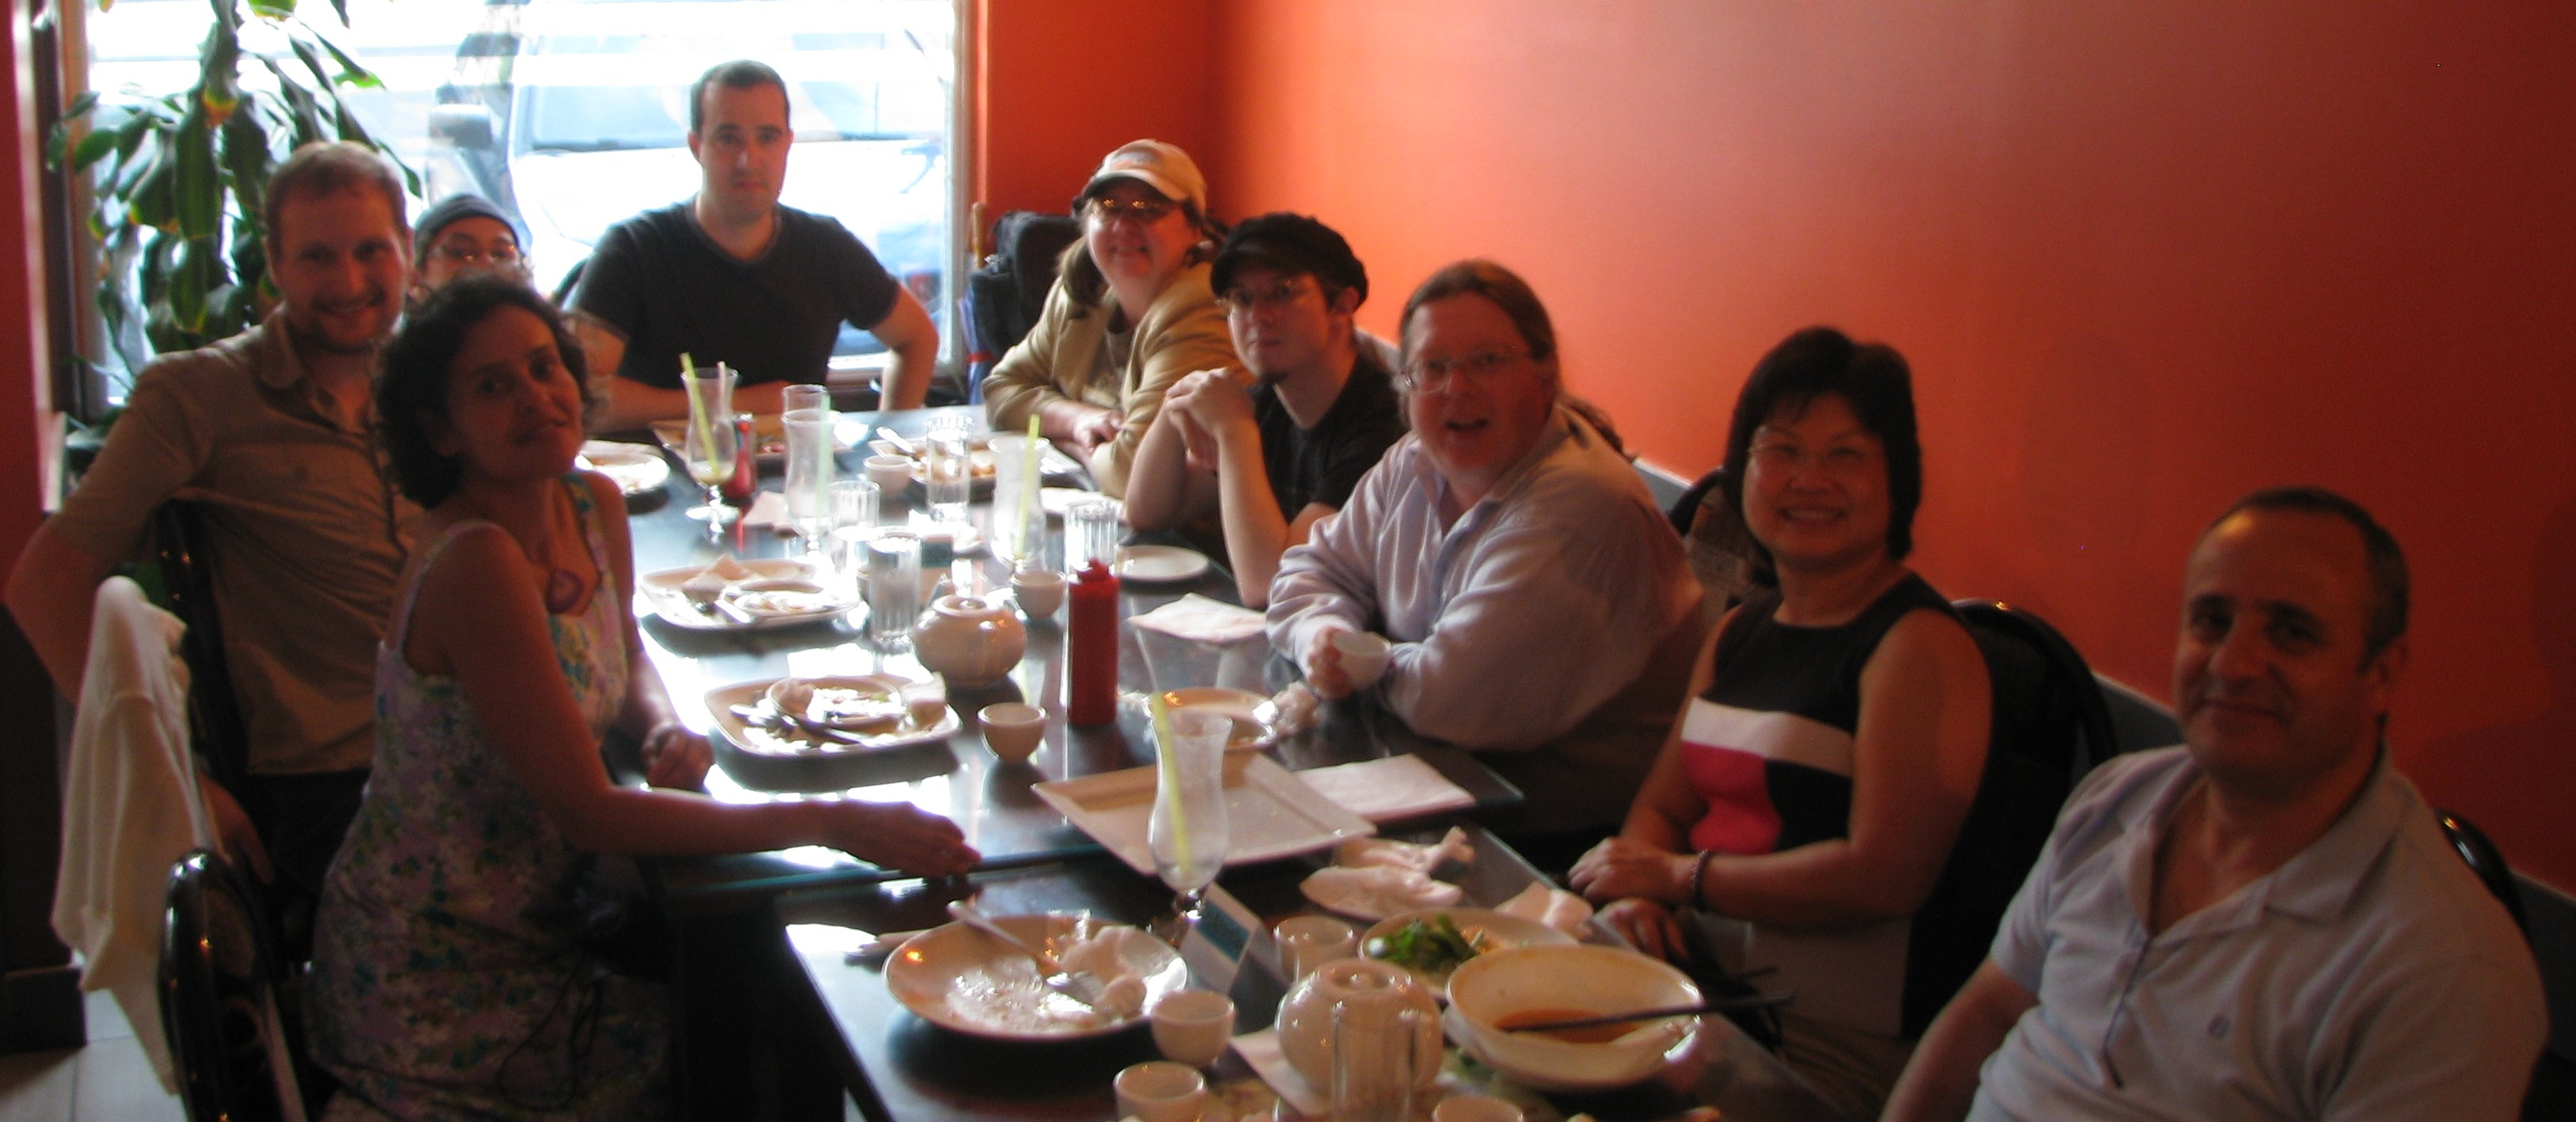 Group Photo, SysAdminDay Dinner, 27 July 2012